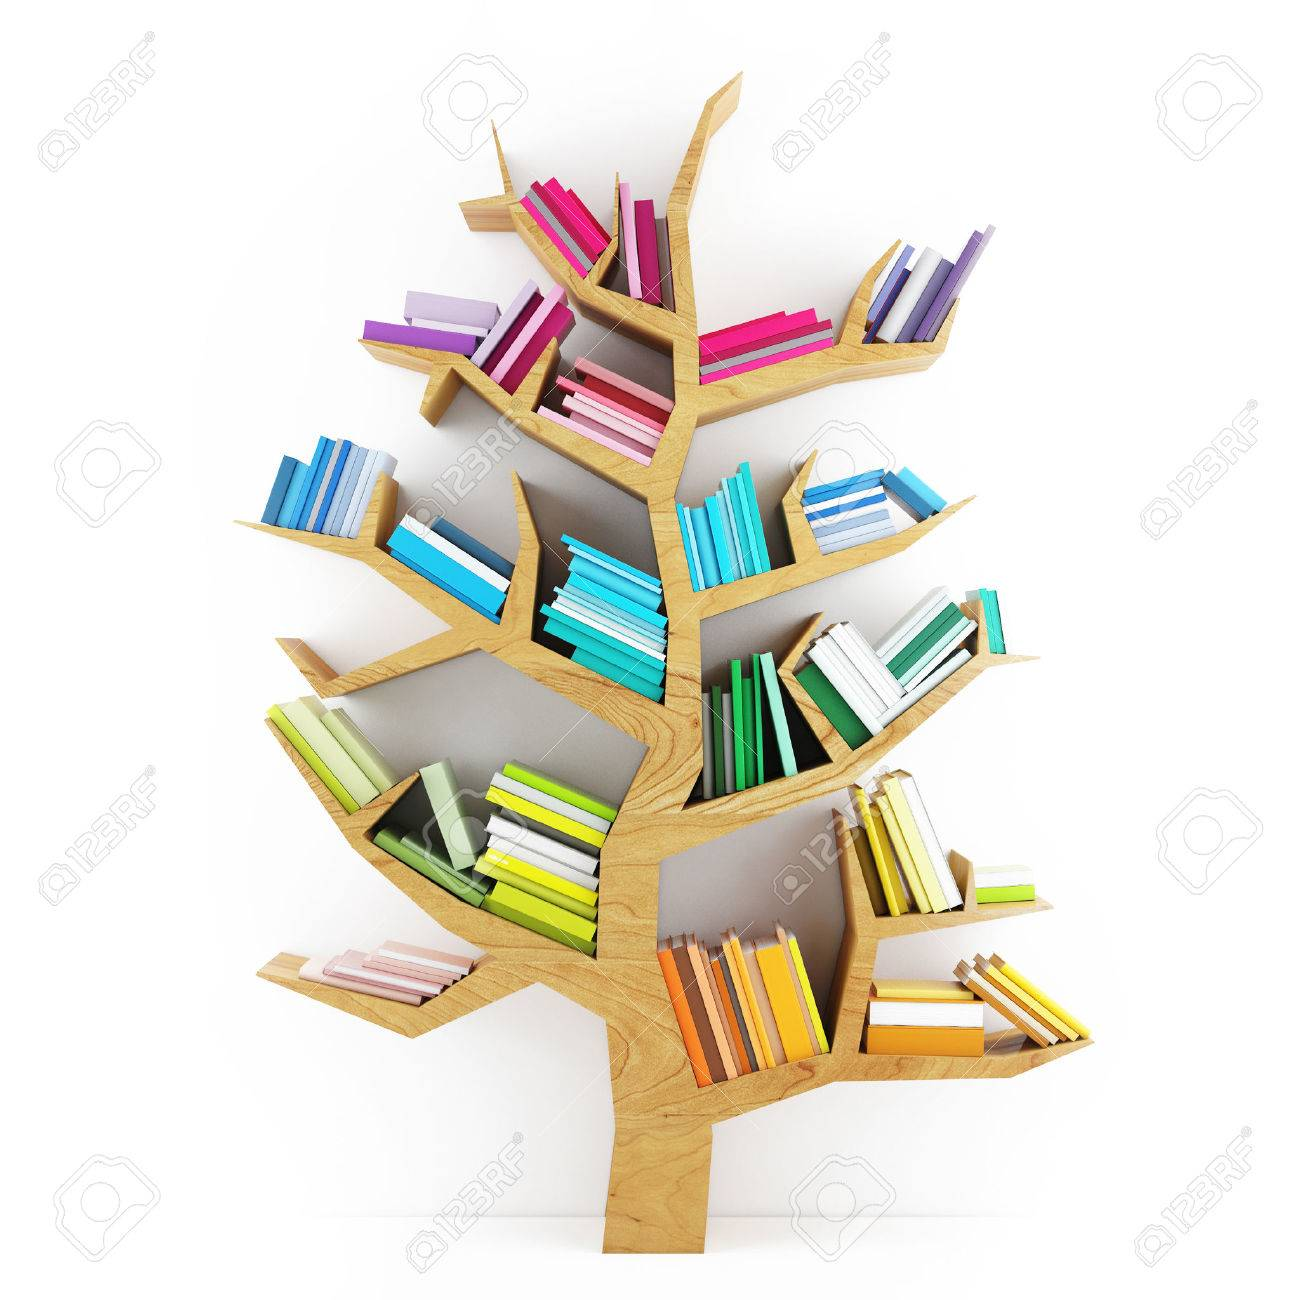 Tree of Knowledge, Wooden Shelf with Multicolor Books Isolated on White Background - 32377474